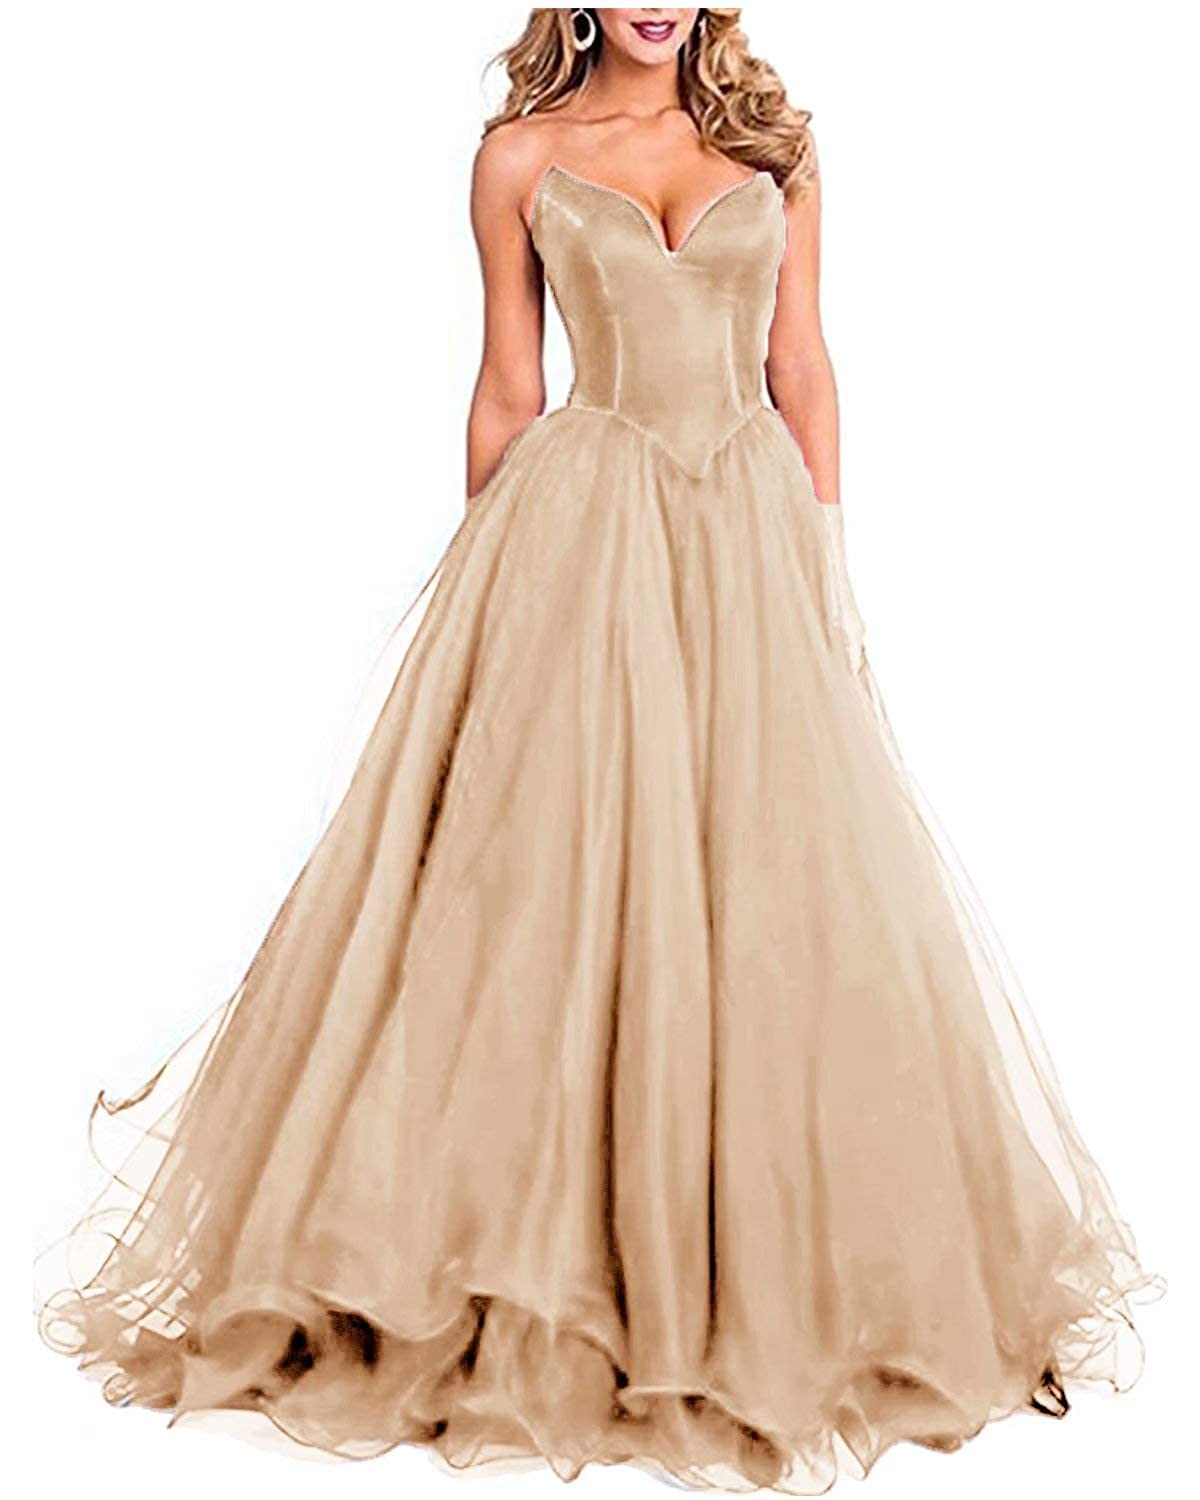 Champagne Fankeshi Womens Sexy Sweetheart Long Prom Party Dresses A line Tulle Formal Evening Gowns